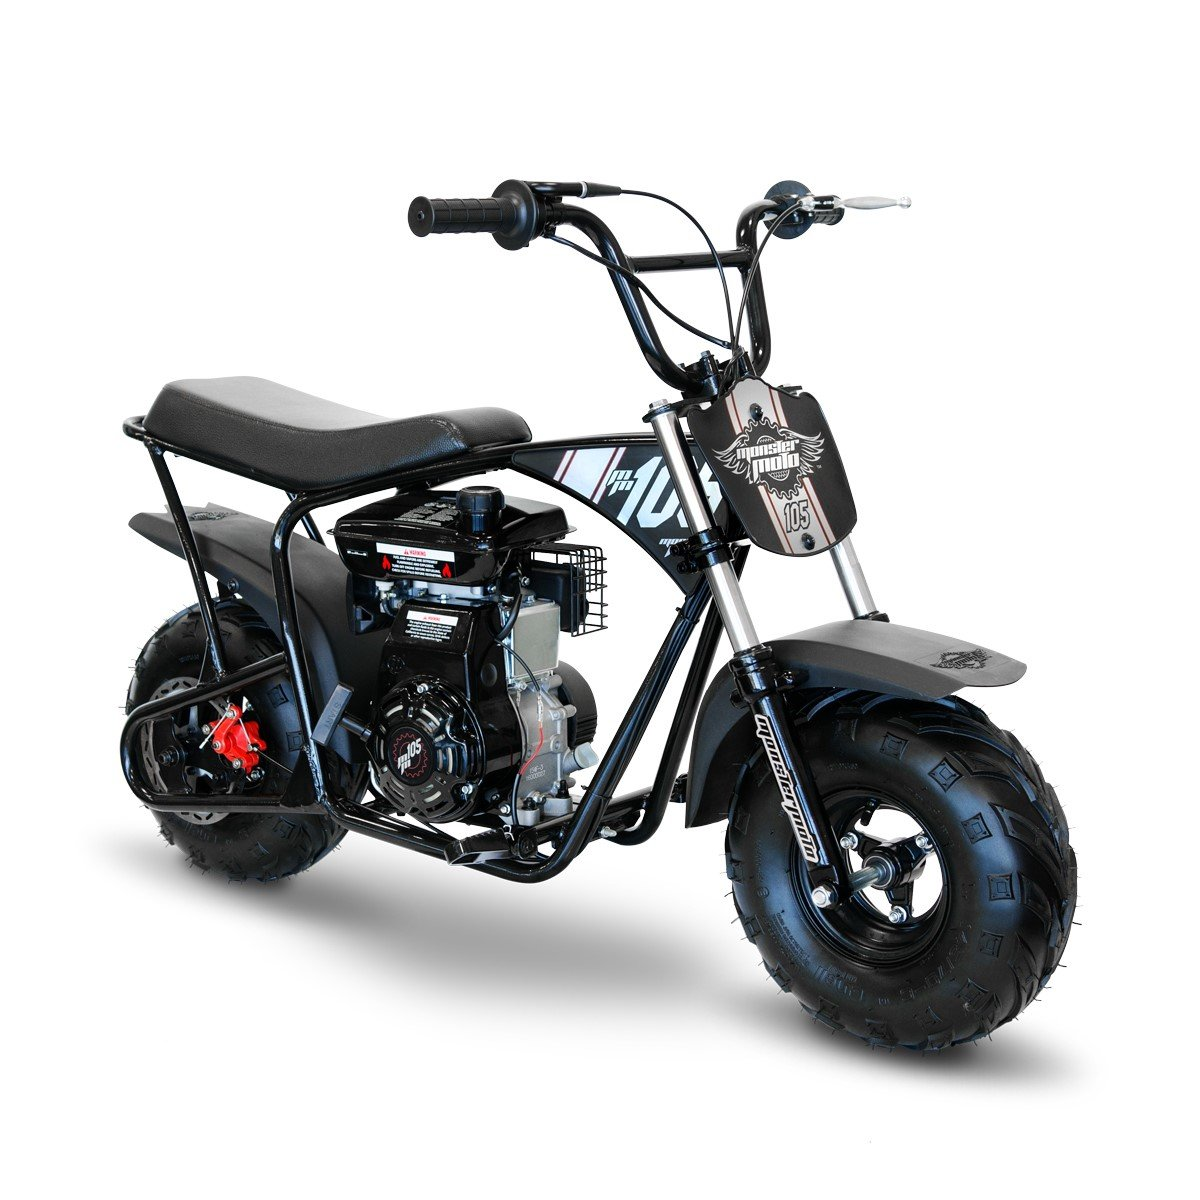 Monster Moto Limited Edition Black on Silver 105CC Mini Bike with Front Suspension-MM-B105-BBX by Monster Moto (Image #2)